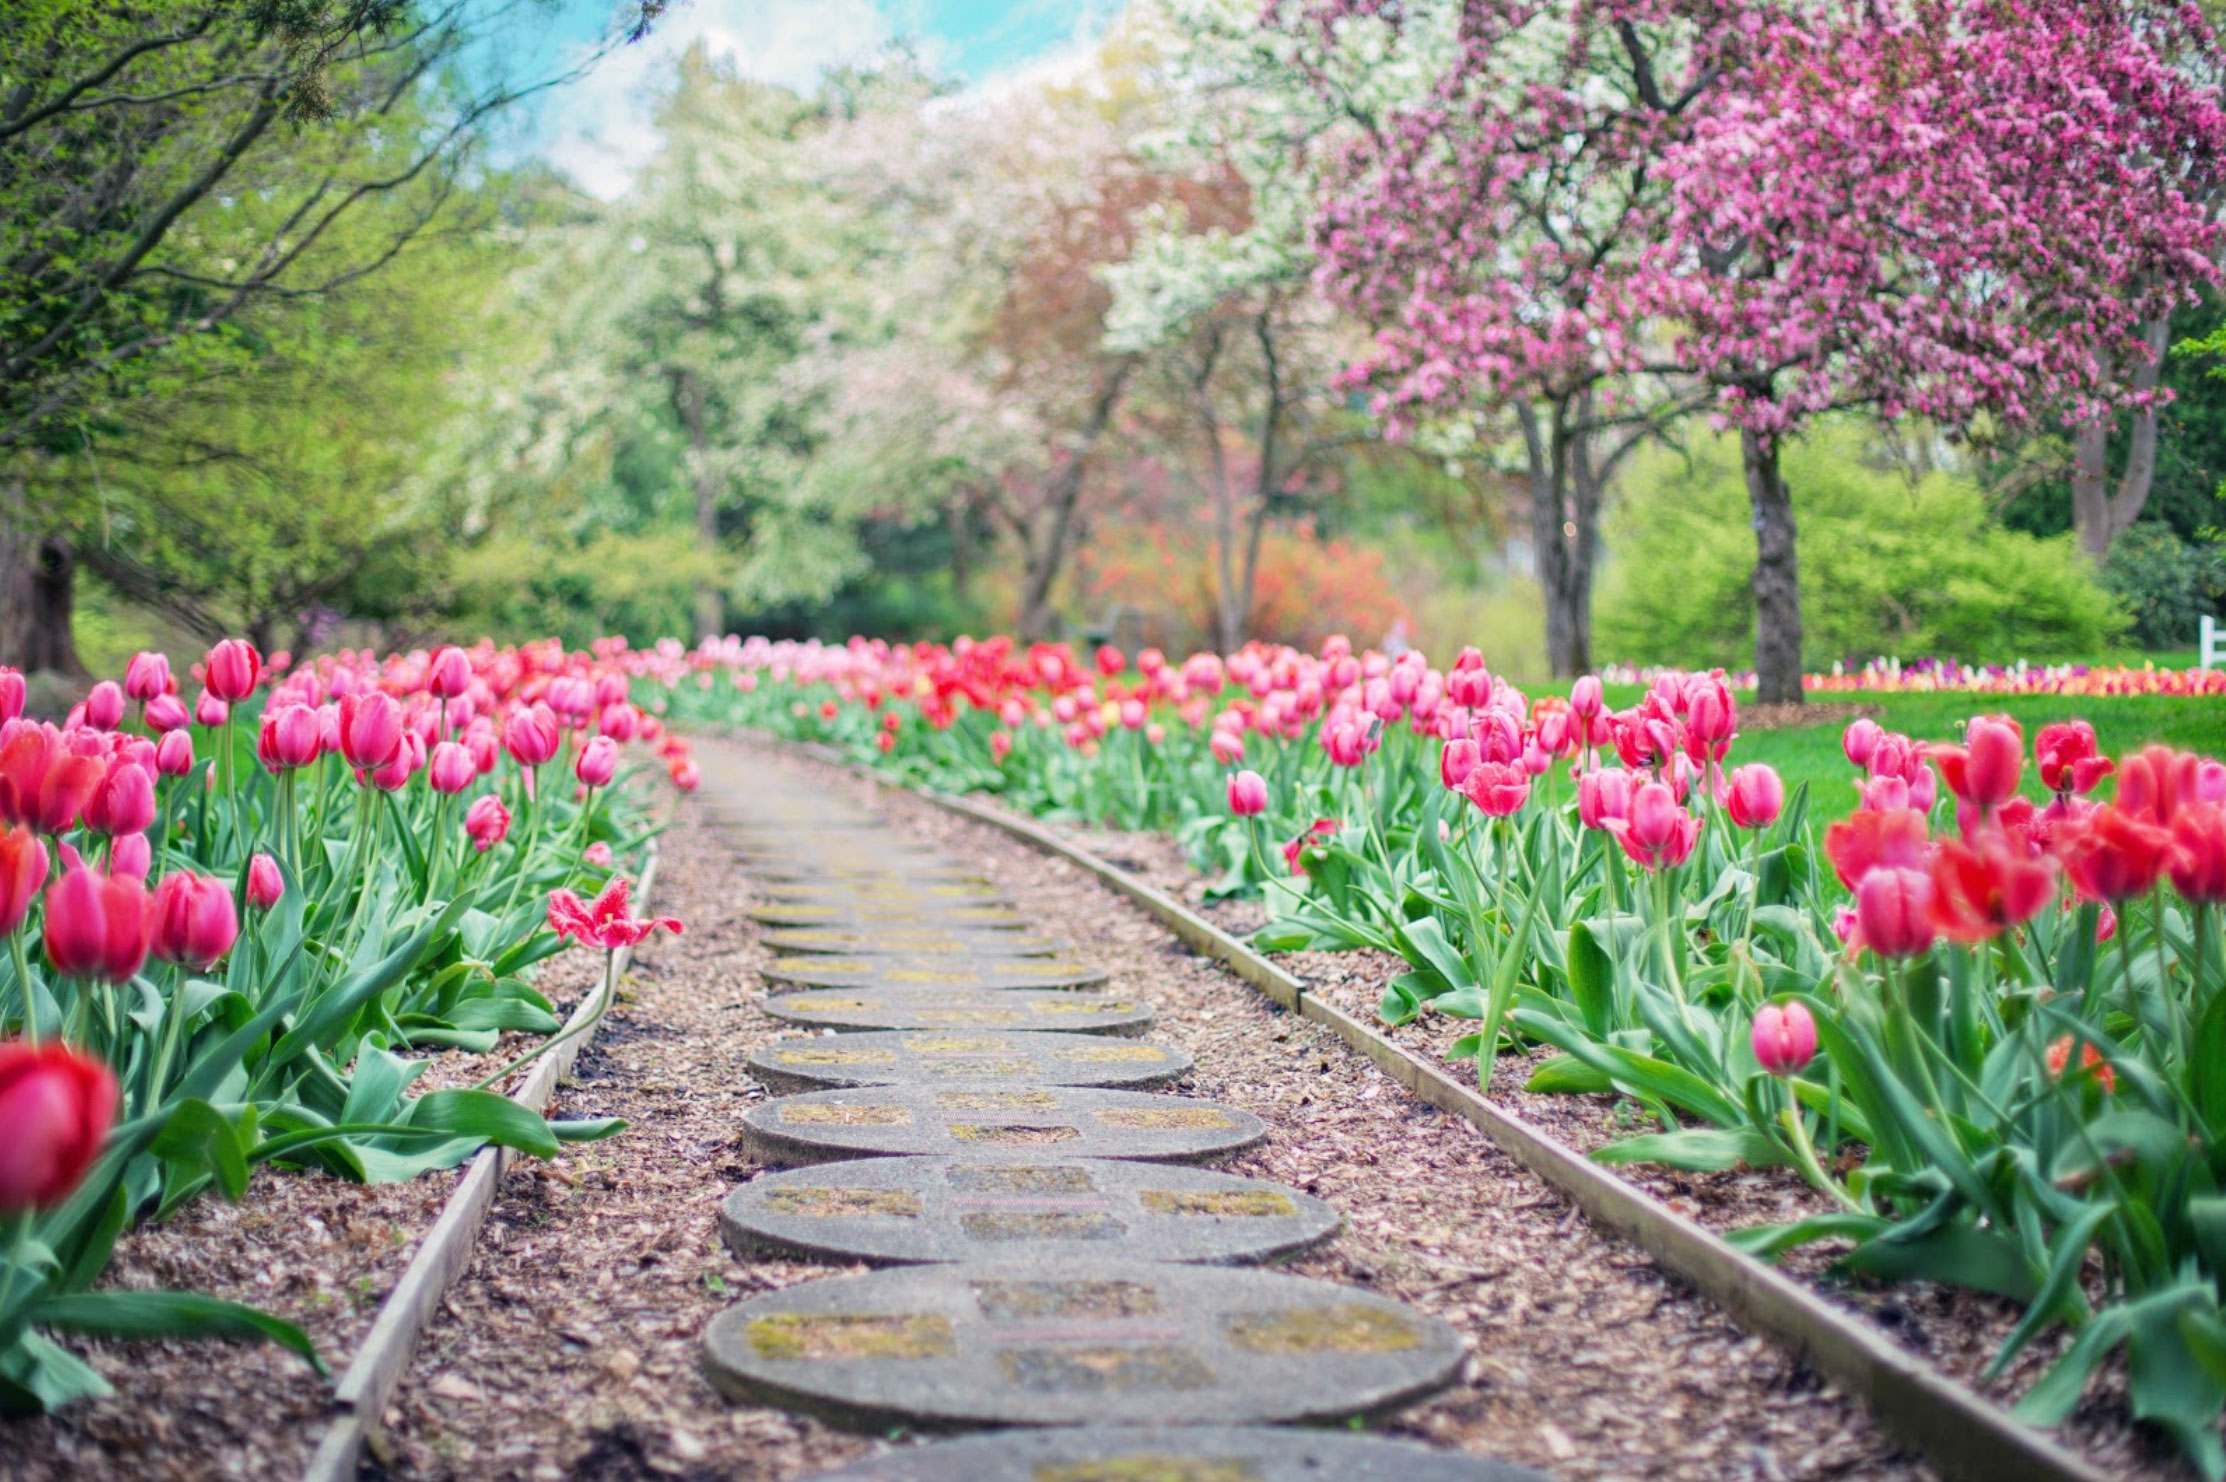 park path lined with tulips